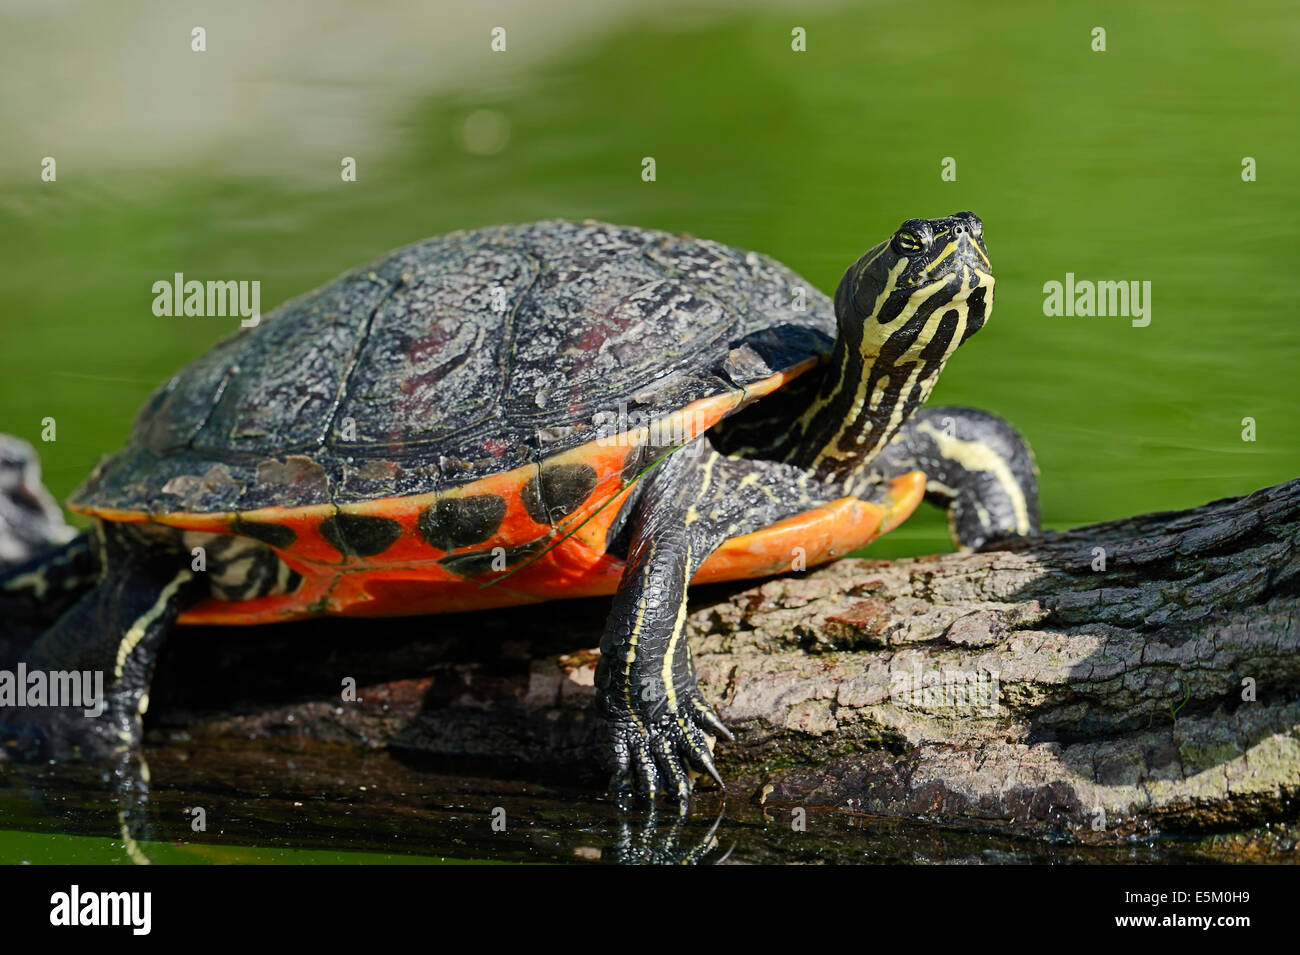 Florida Red-bellied Turtle, Florida Red-bellied Cooter or Florida Redbelly Turtle (Chrysemys nelsoni, Pseudemys Stock Photo